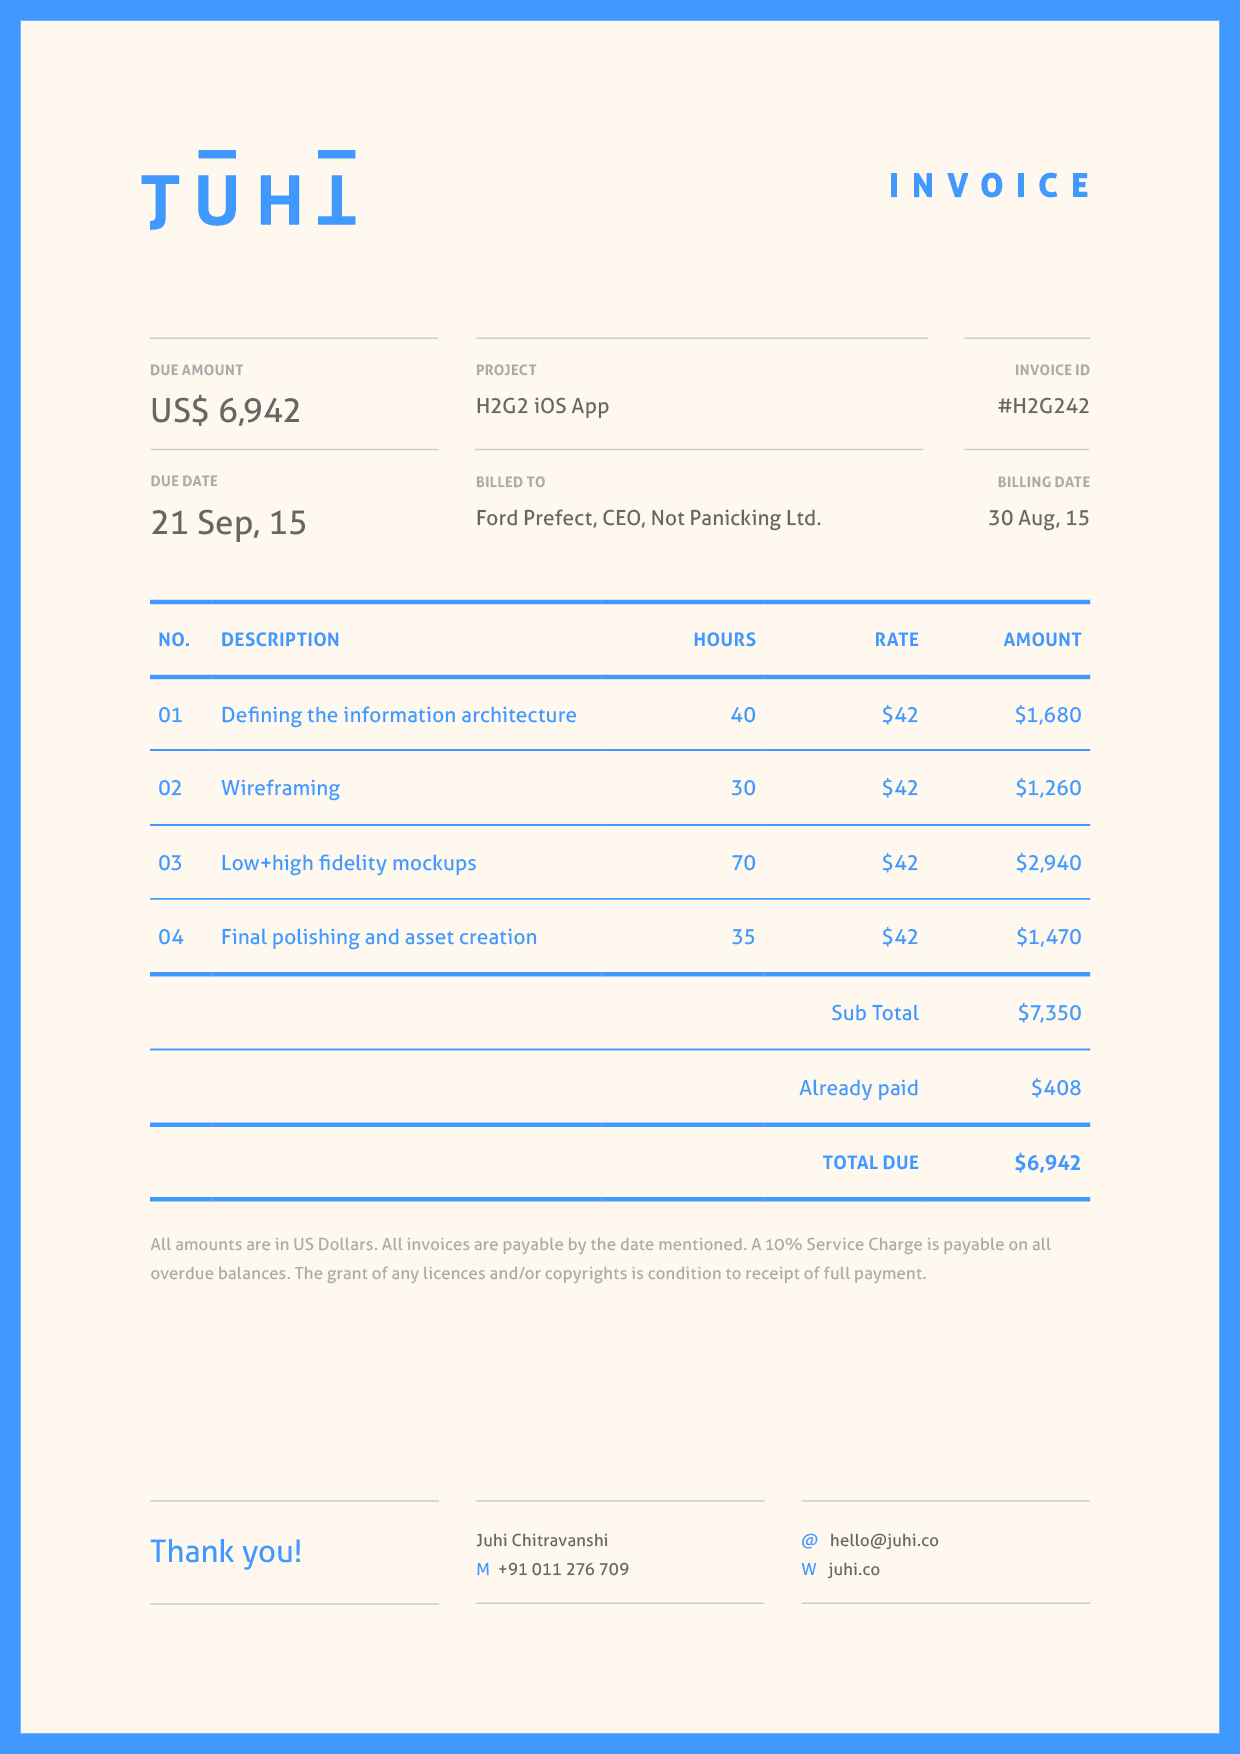 Usdgus  Prepossessing Dont Hold Back On Your Invoice  Inspiring Designs  With Gorgeous Invoice By Juhi Chitravanshi Follow With Agreeable Easy Invoice Maker Also Invoice Finance Factoring In Addition Express Invoice Invoicing Software And Custom Made Invoices As Well As Google Docs Invoice Templates Additionally Adams Invoices From Inspirationfeedcom With Usdgus  Gorgeous Dont Hold Back On Your Invoice  Inspiring Designs  With Agreeable Invoice By Juhi Chitravanshi Follow And Prepossessing Easy Invoice Maker Also Invoice Finance Factoring In Addition Express Invoice Invoicing Software From Inspirationfeedcom